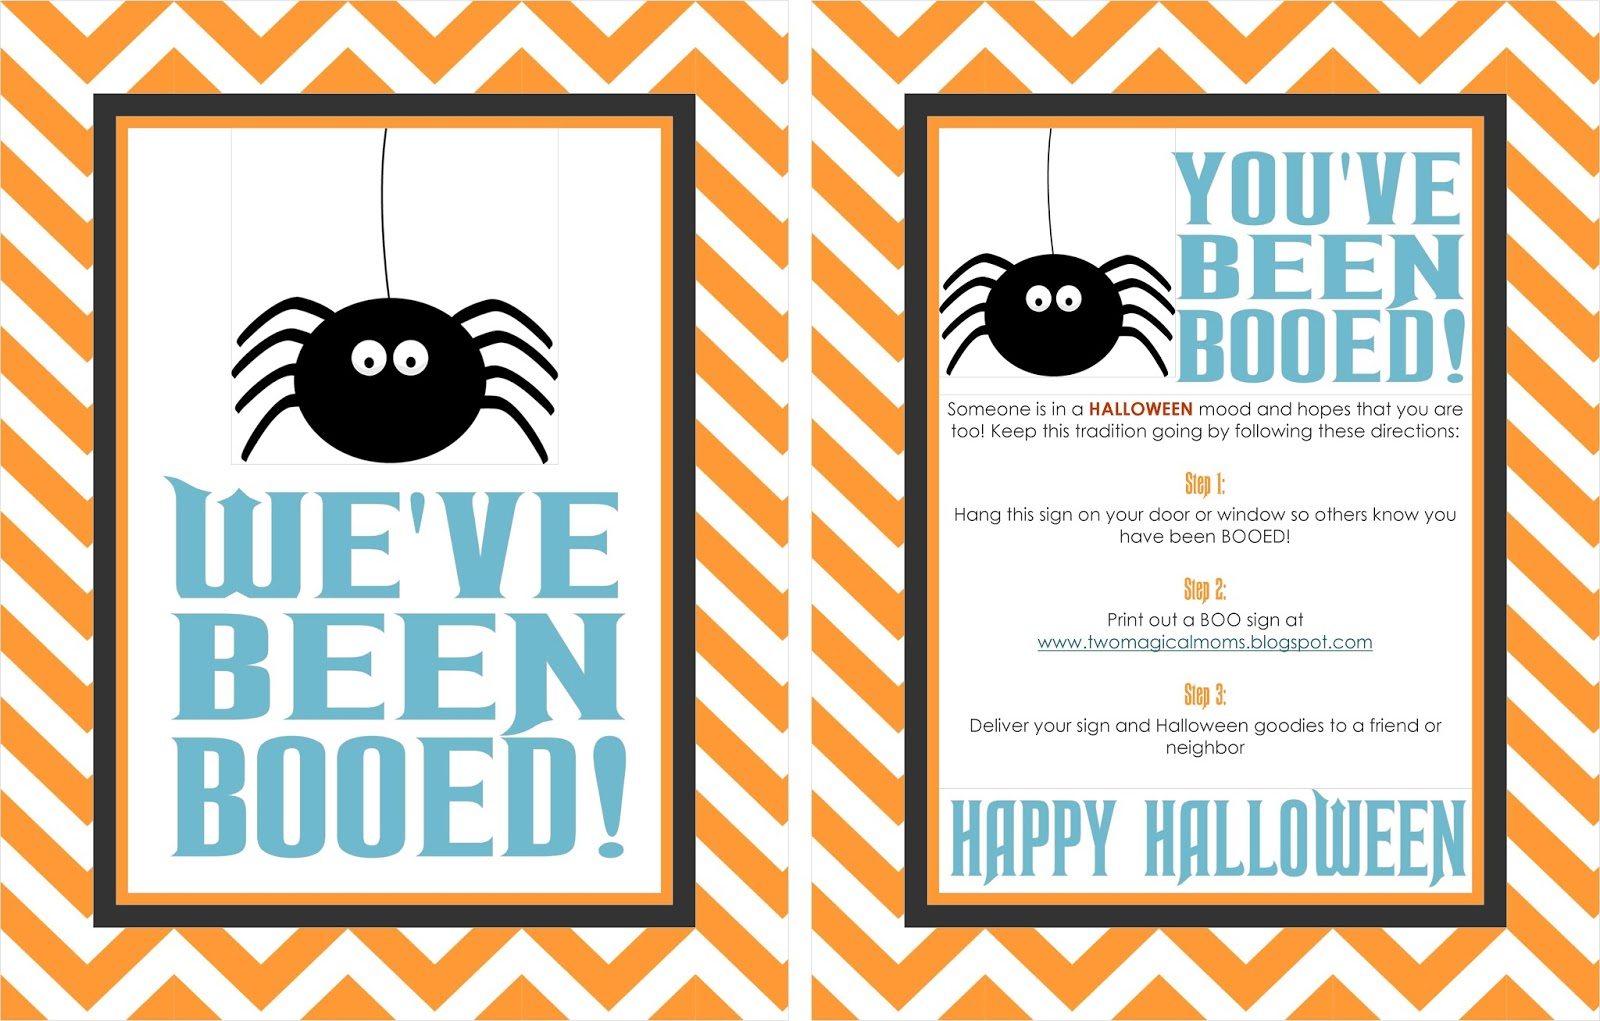 image relating to You've Been Booed Printable Pdf called 2 Magical Mothers: Halloween- Youve Been Booed!